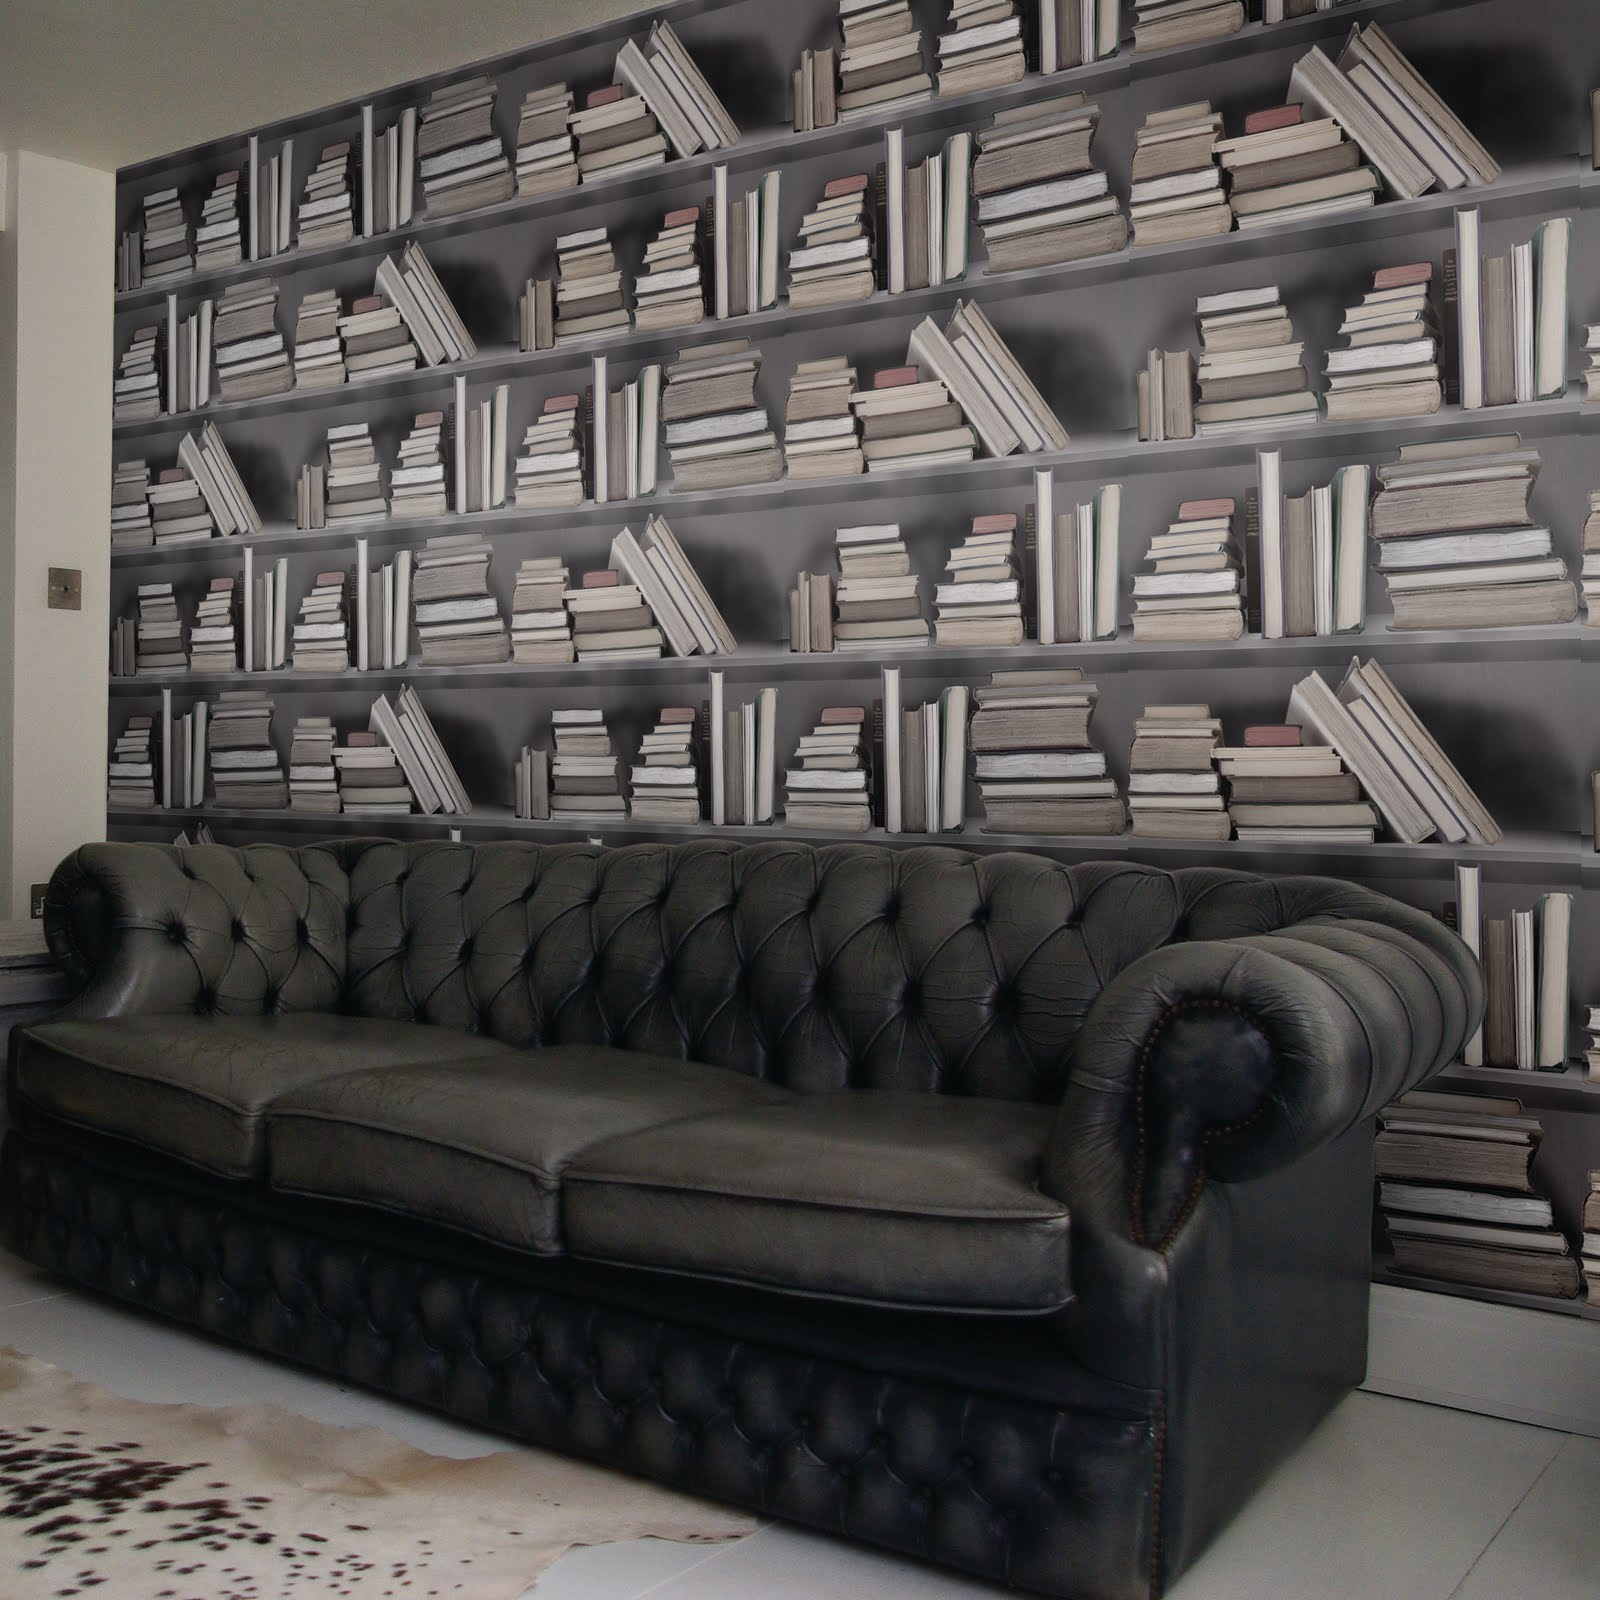 Ridiculously fab bookshelf wallpaper interior casas de lujo for Casas de lujo